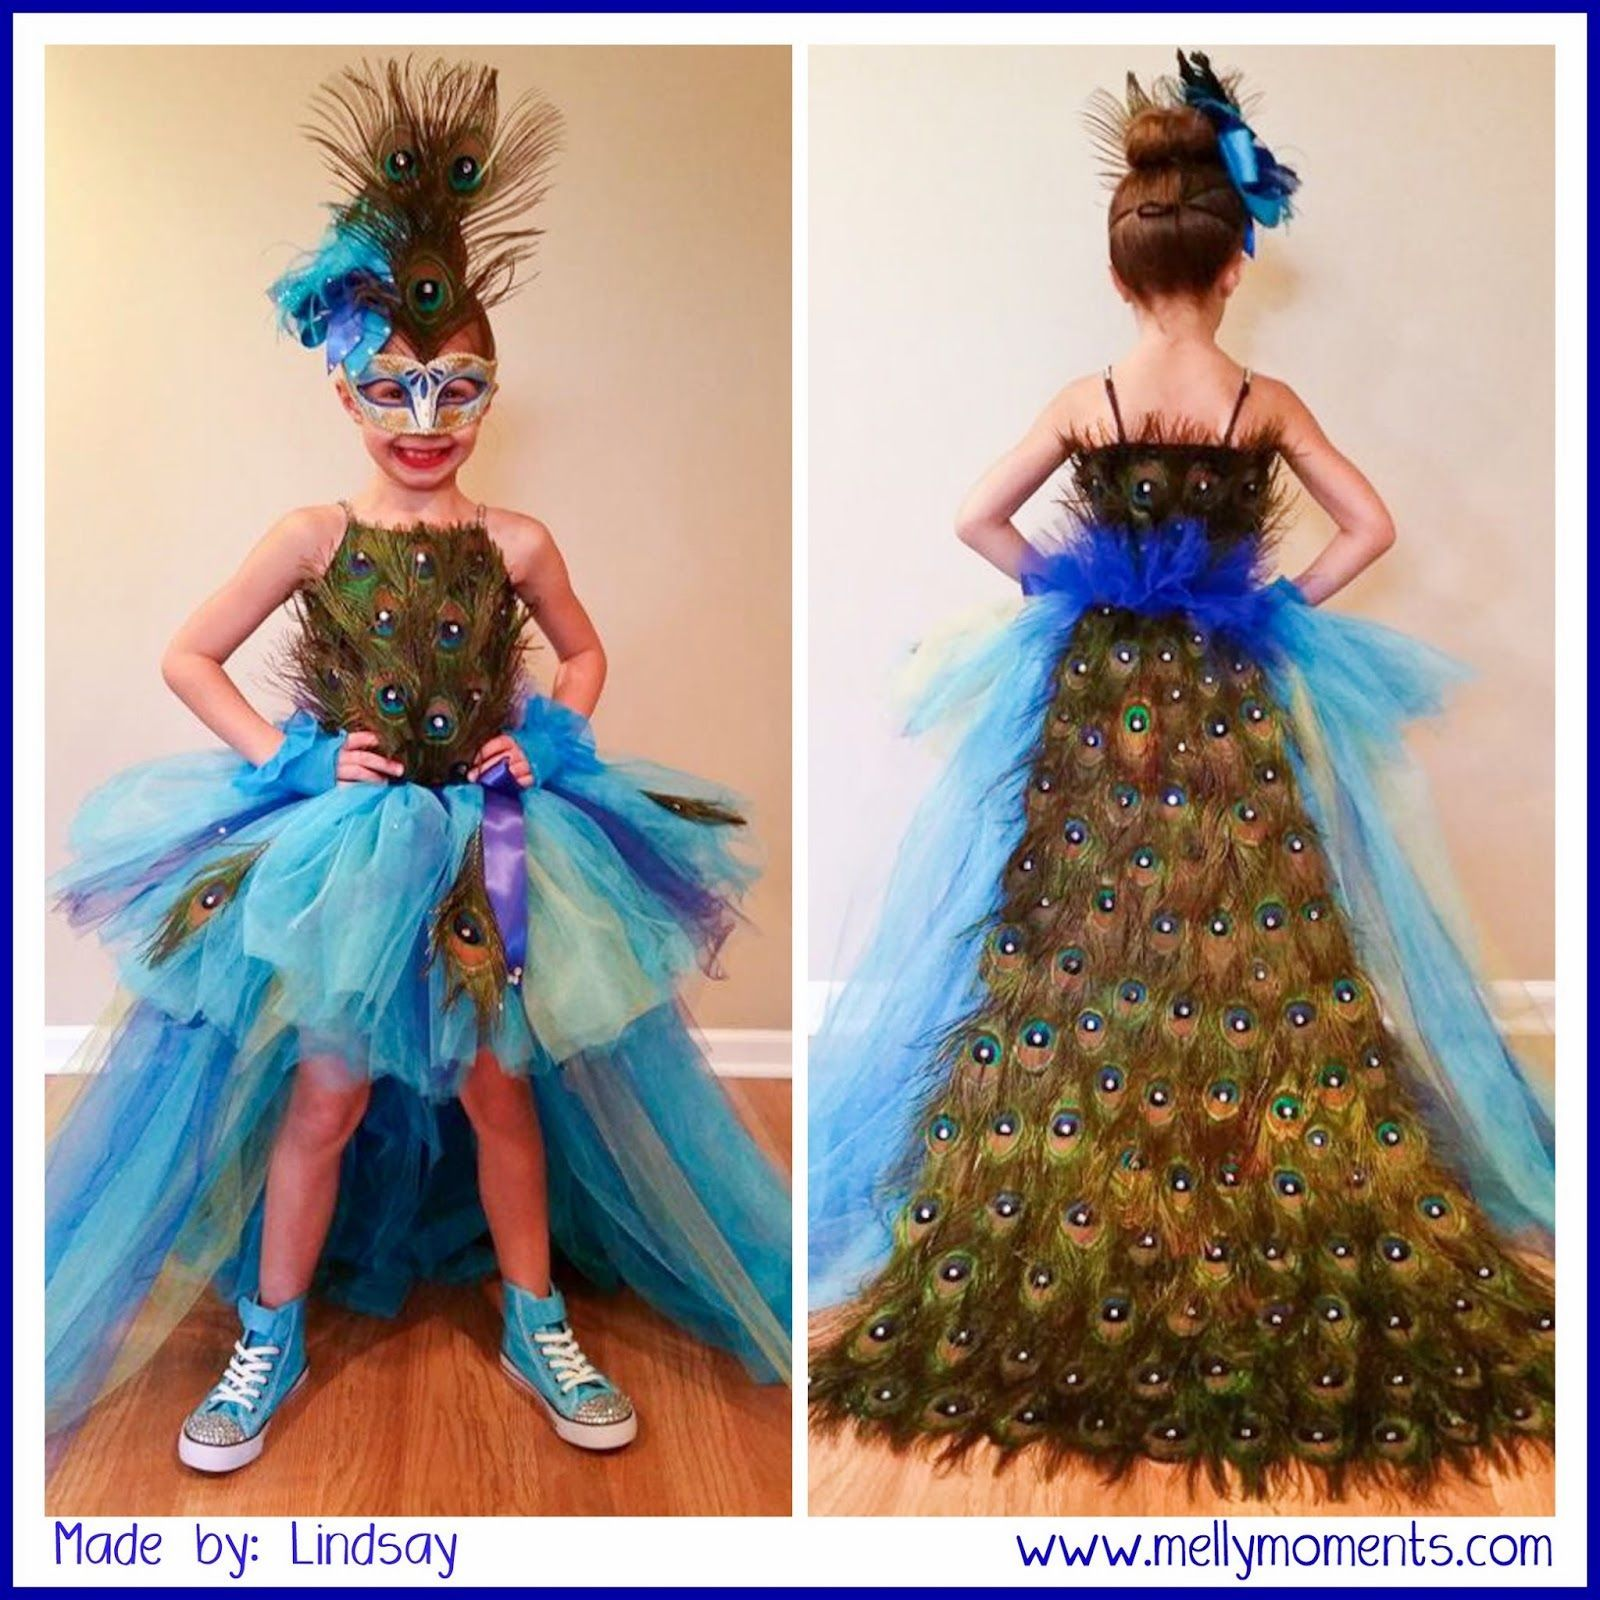 e4bcebb08 DIY Halloween Costumes on Melly Moments Blog! Come check out this  incredible peacock costume! From every little detail, head to toe, any  little girl would ...